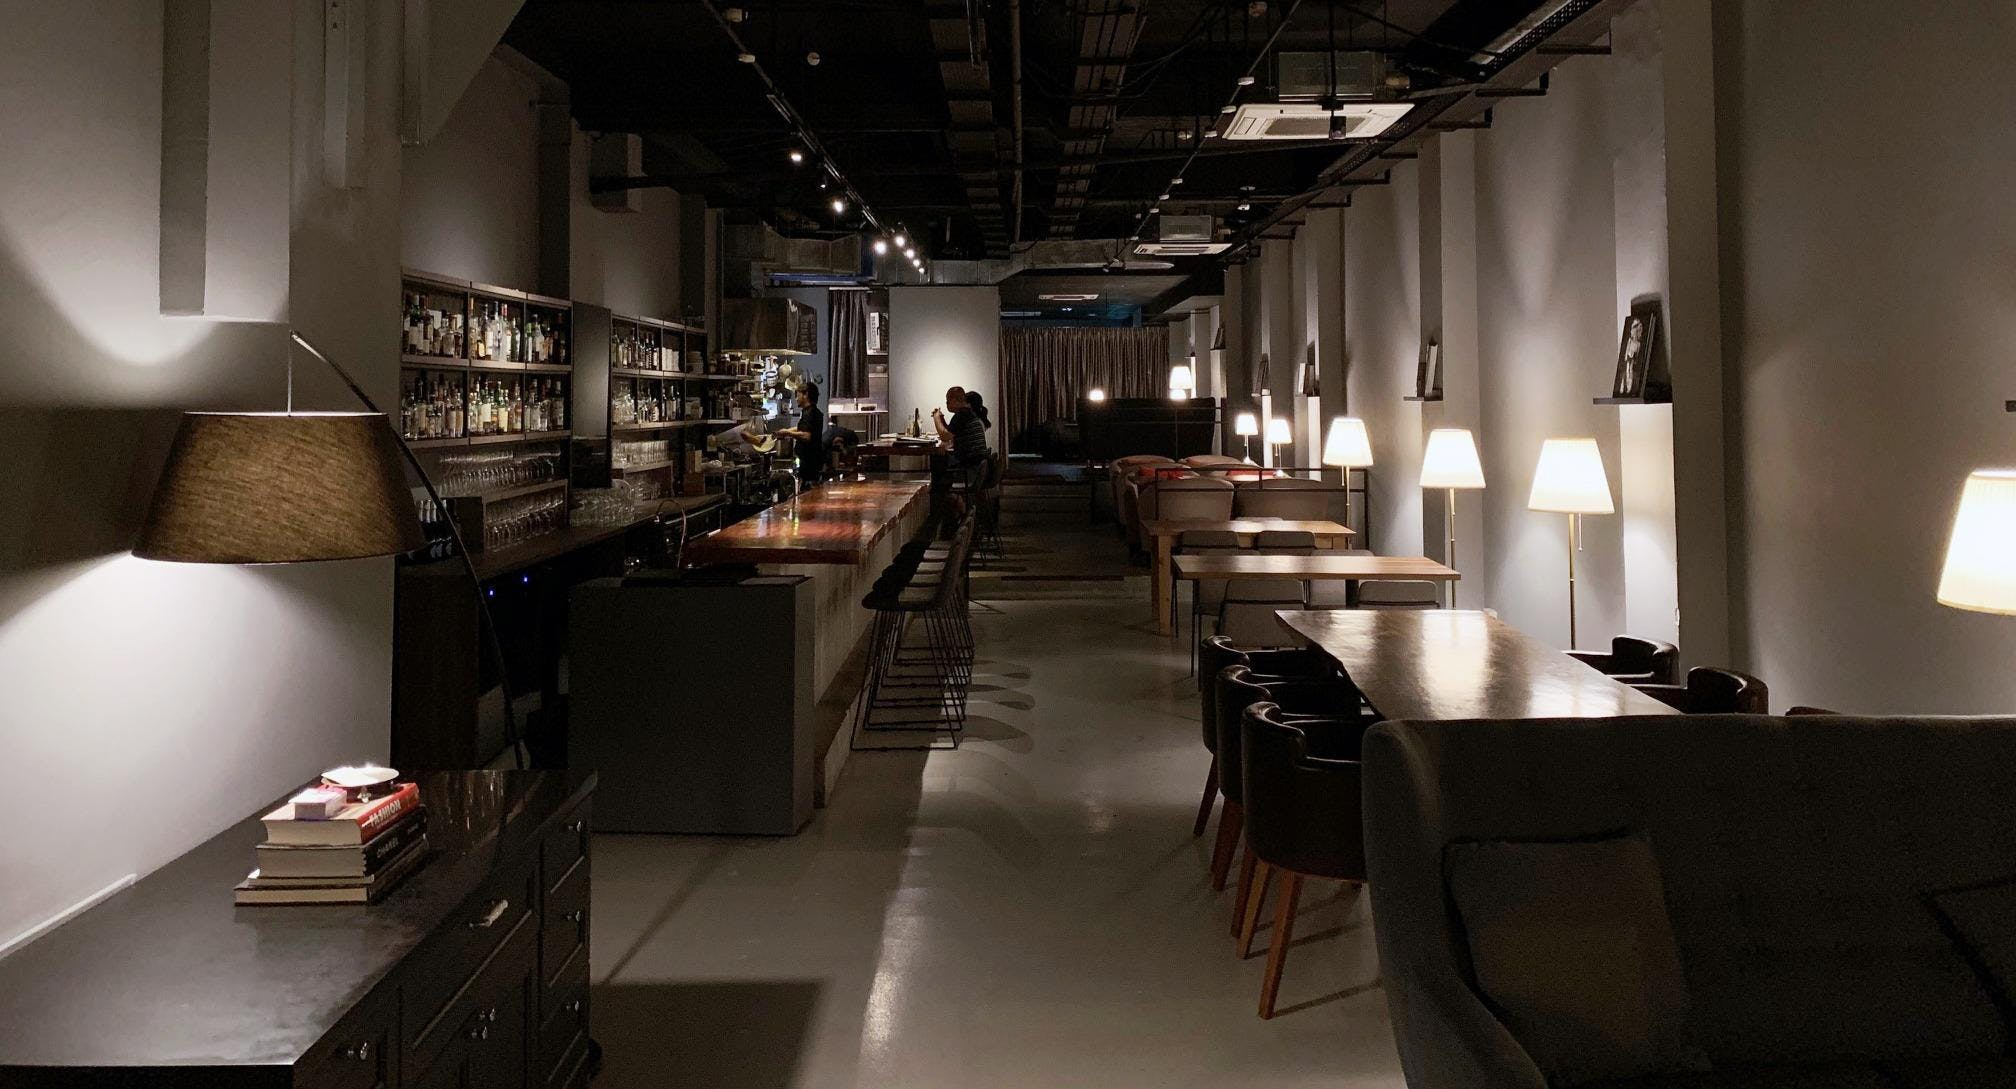 Pixy Contemporary French Cuisine and Bar Singapore image 1